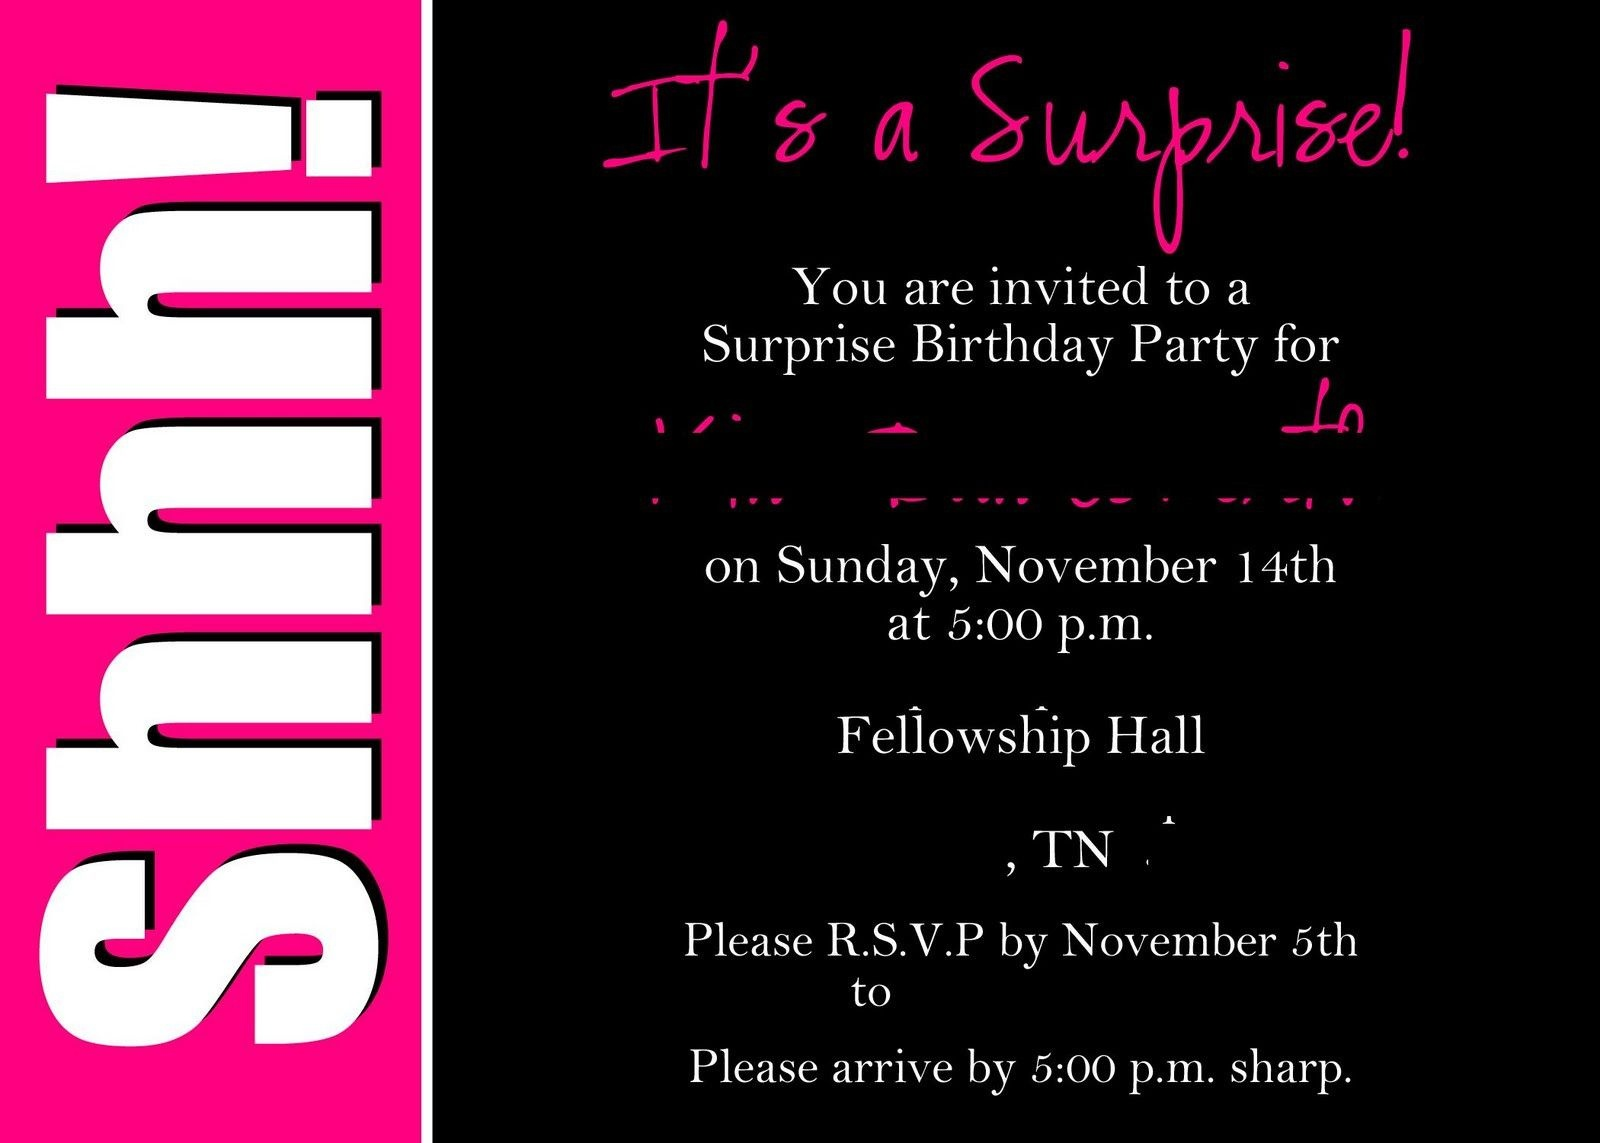 40Th Surprise Birthday Party Invitations | Free Printable Birthday - Free Printable Surprise Party Invitations